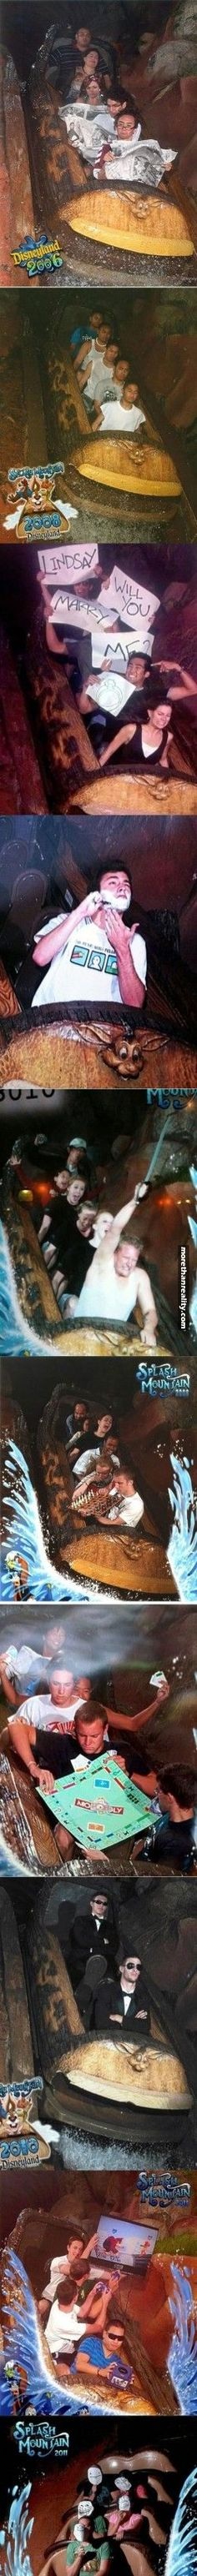 Best of Disneyland's Splash Mountain